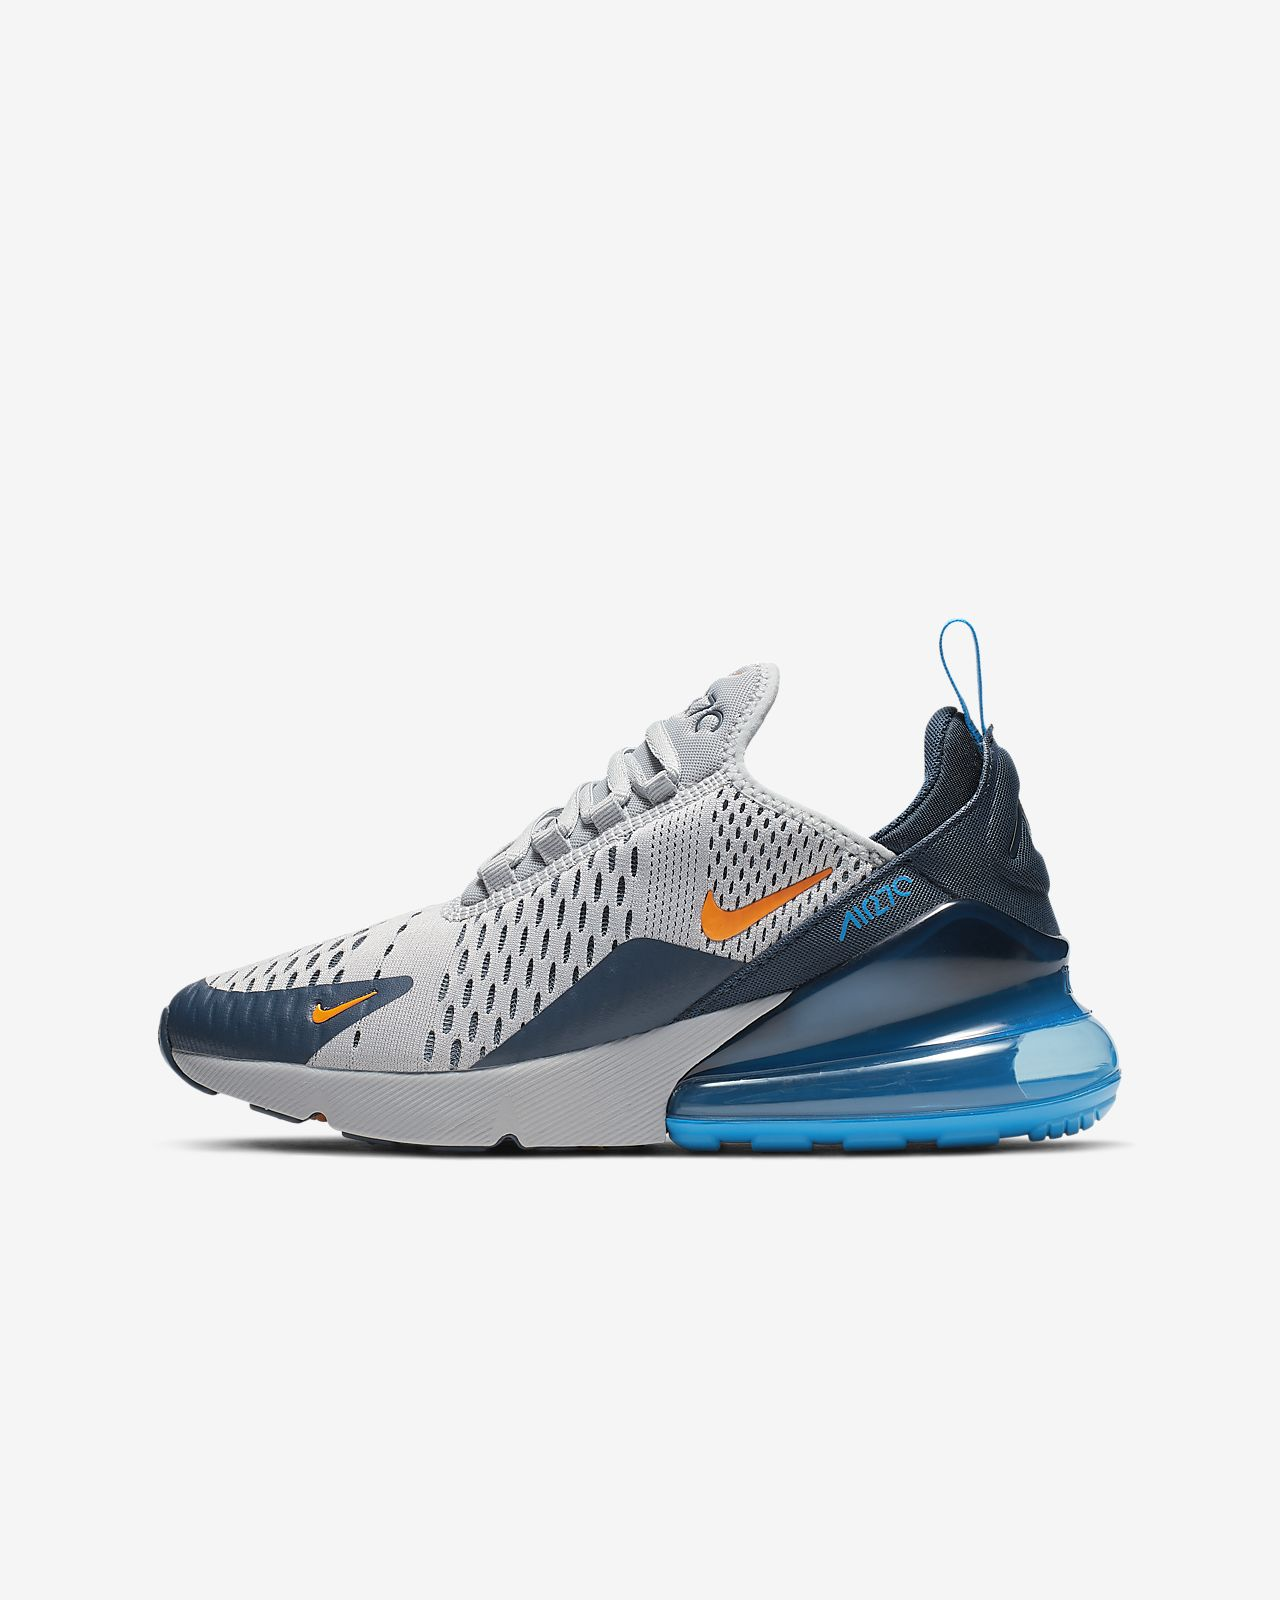 air max 270 bleu marine